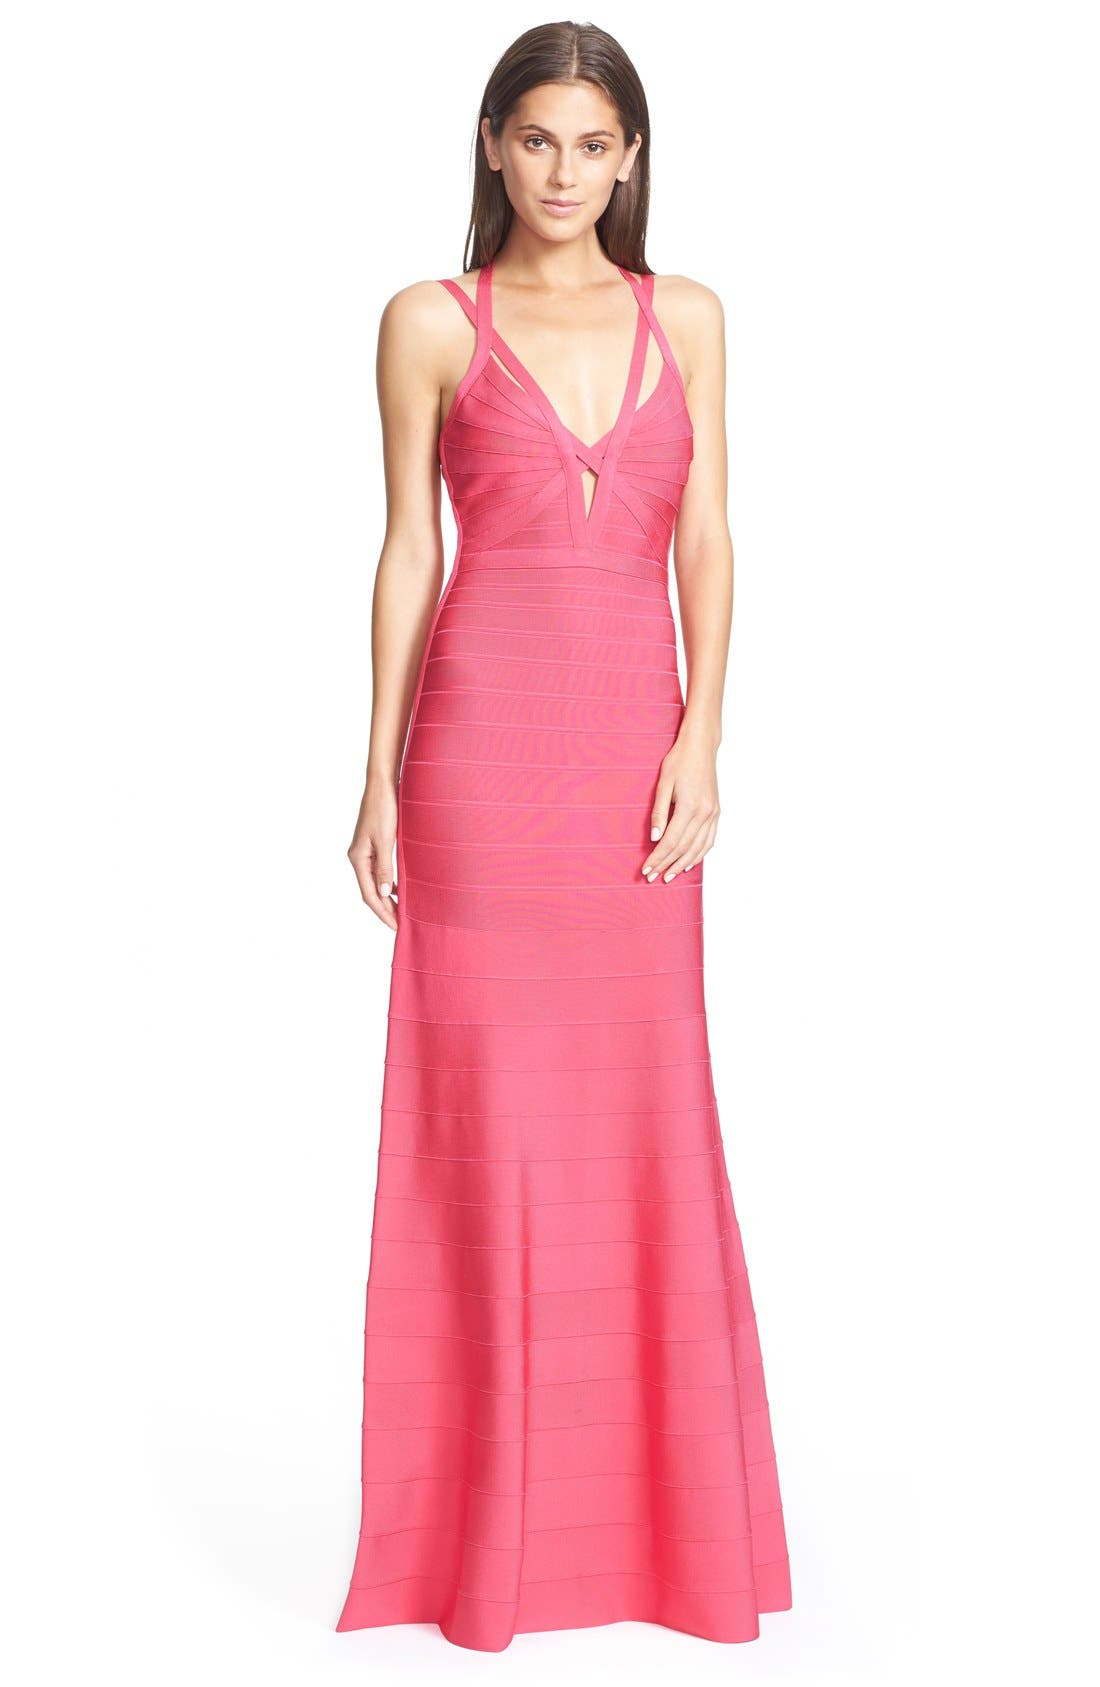 Main Image - Herve Leger 'Adalet' Mermaid Bandage Gown